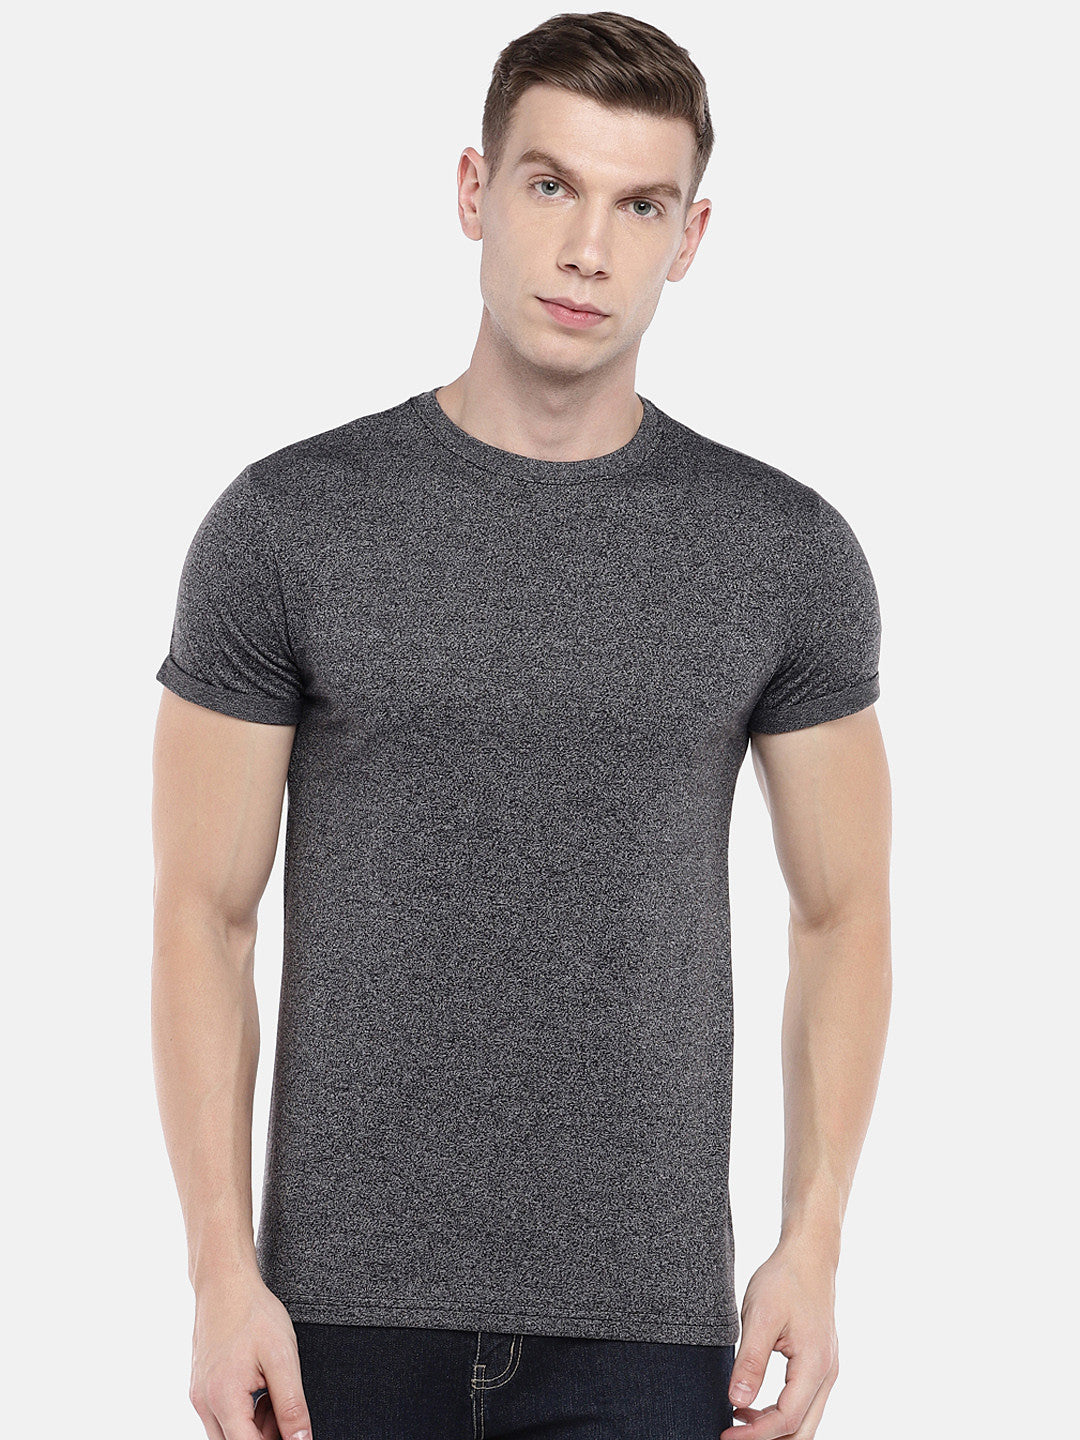 Grey Solid Round Neck T-shirt-1